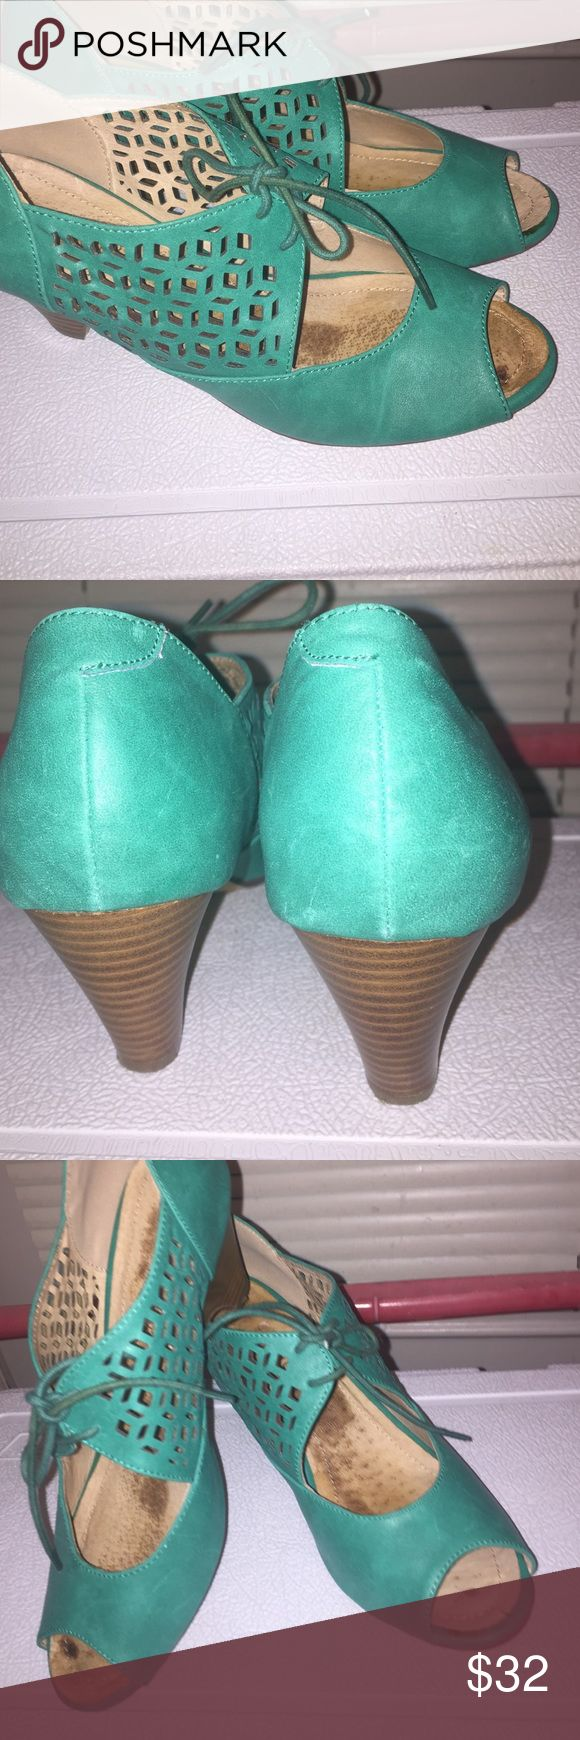 Chelsea shoes size size 8 These are a beautiful teal color Chelsea Modclh can be. Vintage inspired draw  strin gas some disclosure in center were the pad was no marks on shoes  😉size 8 wedged lol Chelsea & Zoe Shoes Wedges